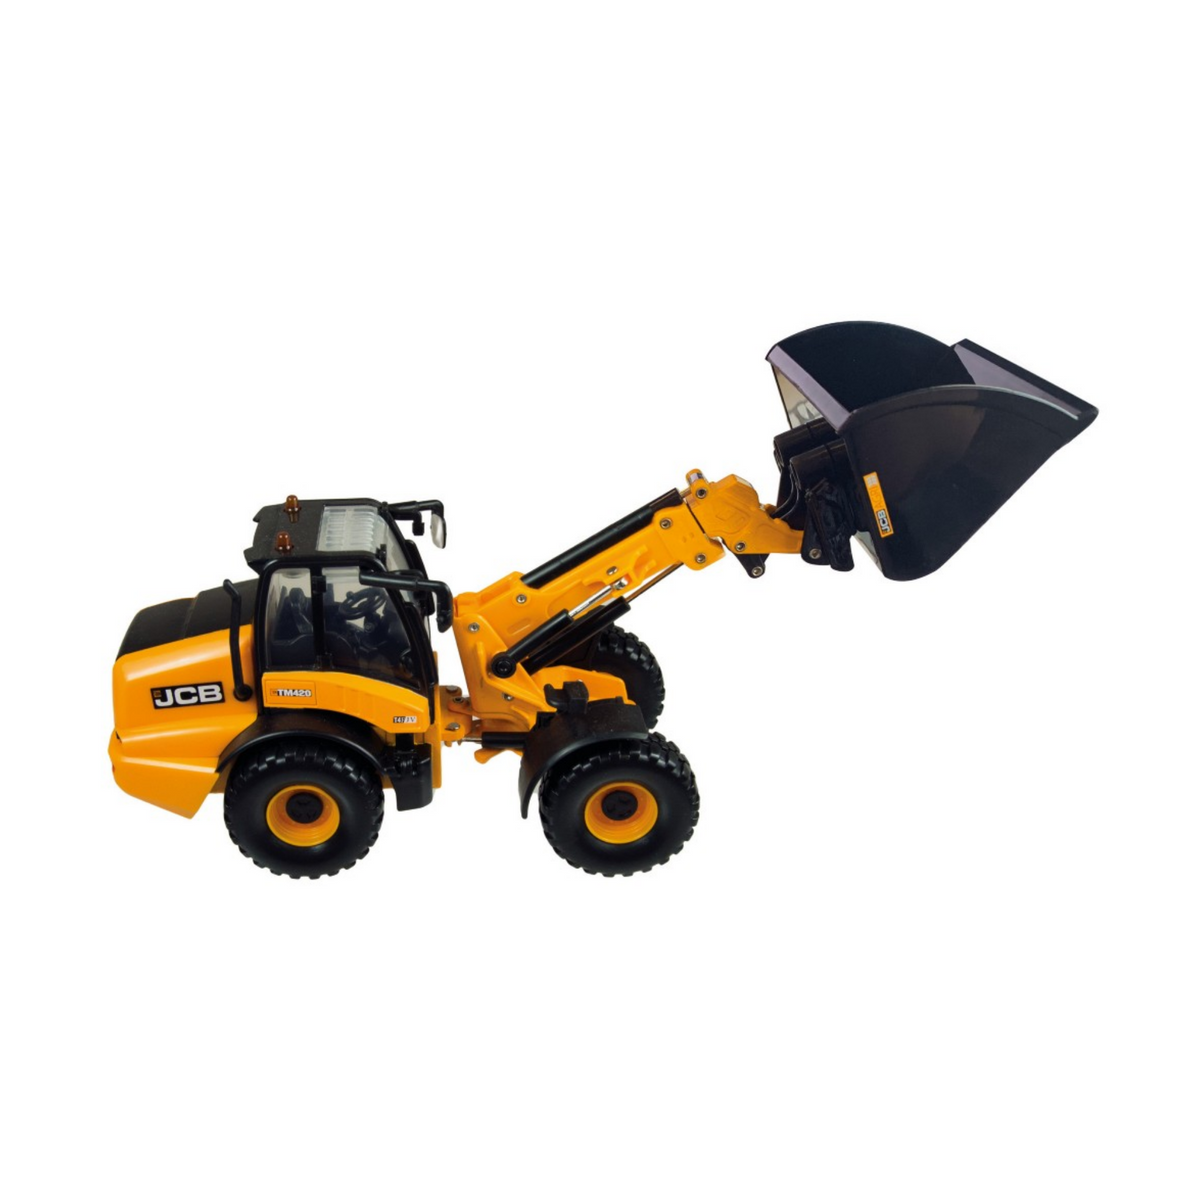 Britains JCB TM420 wheel loader 43231